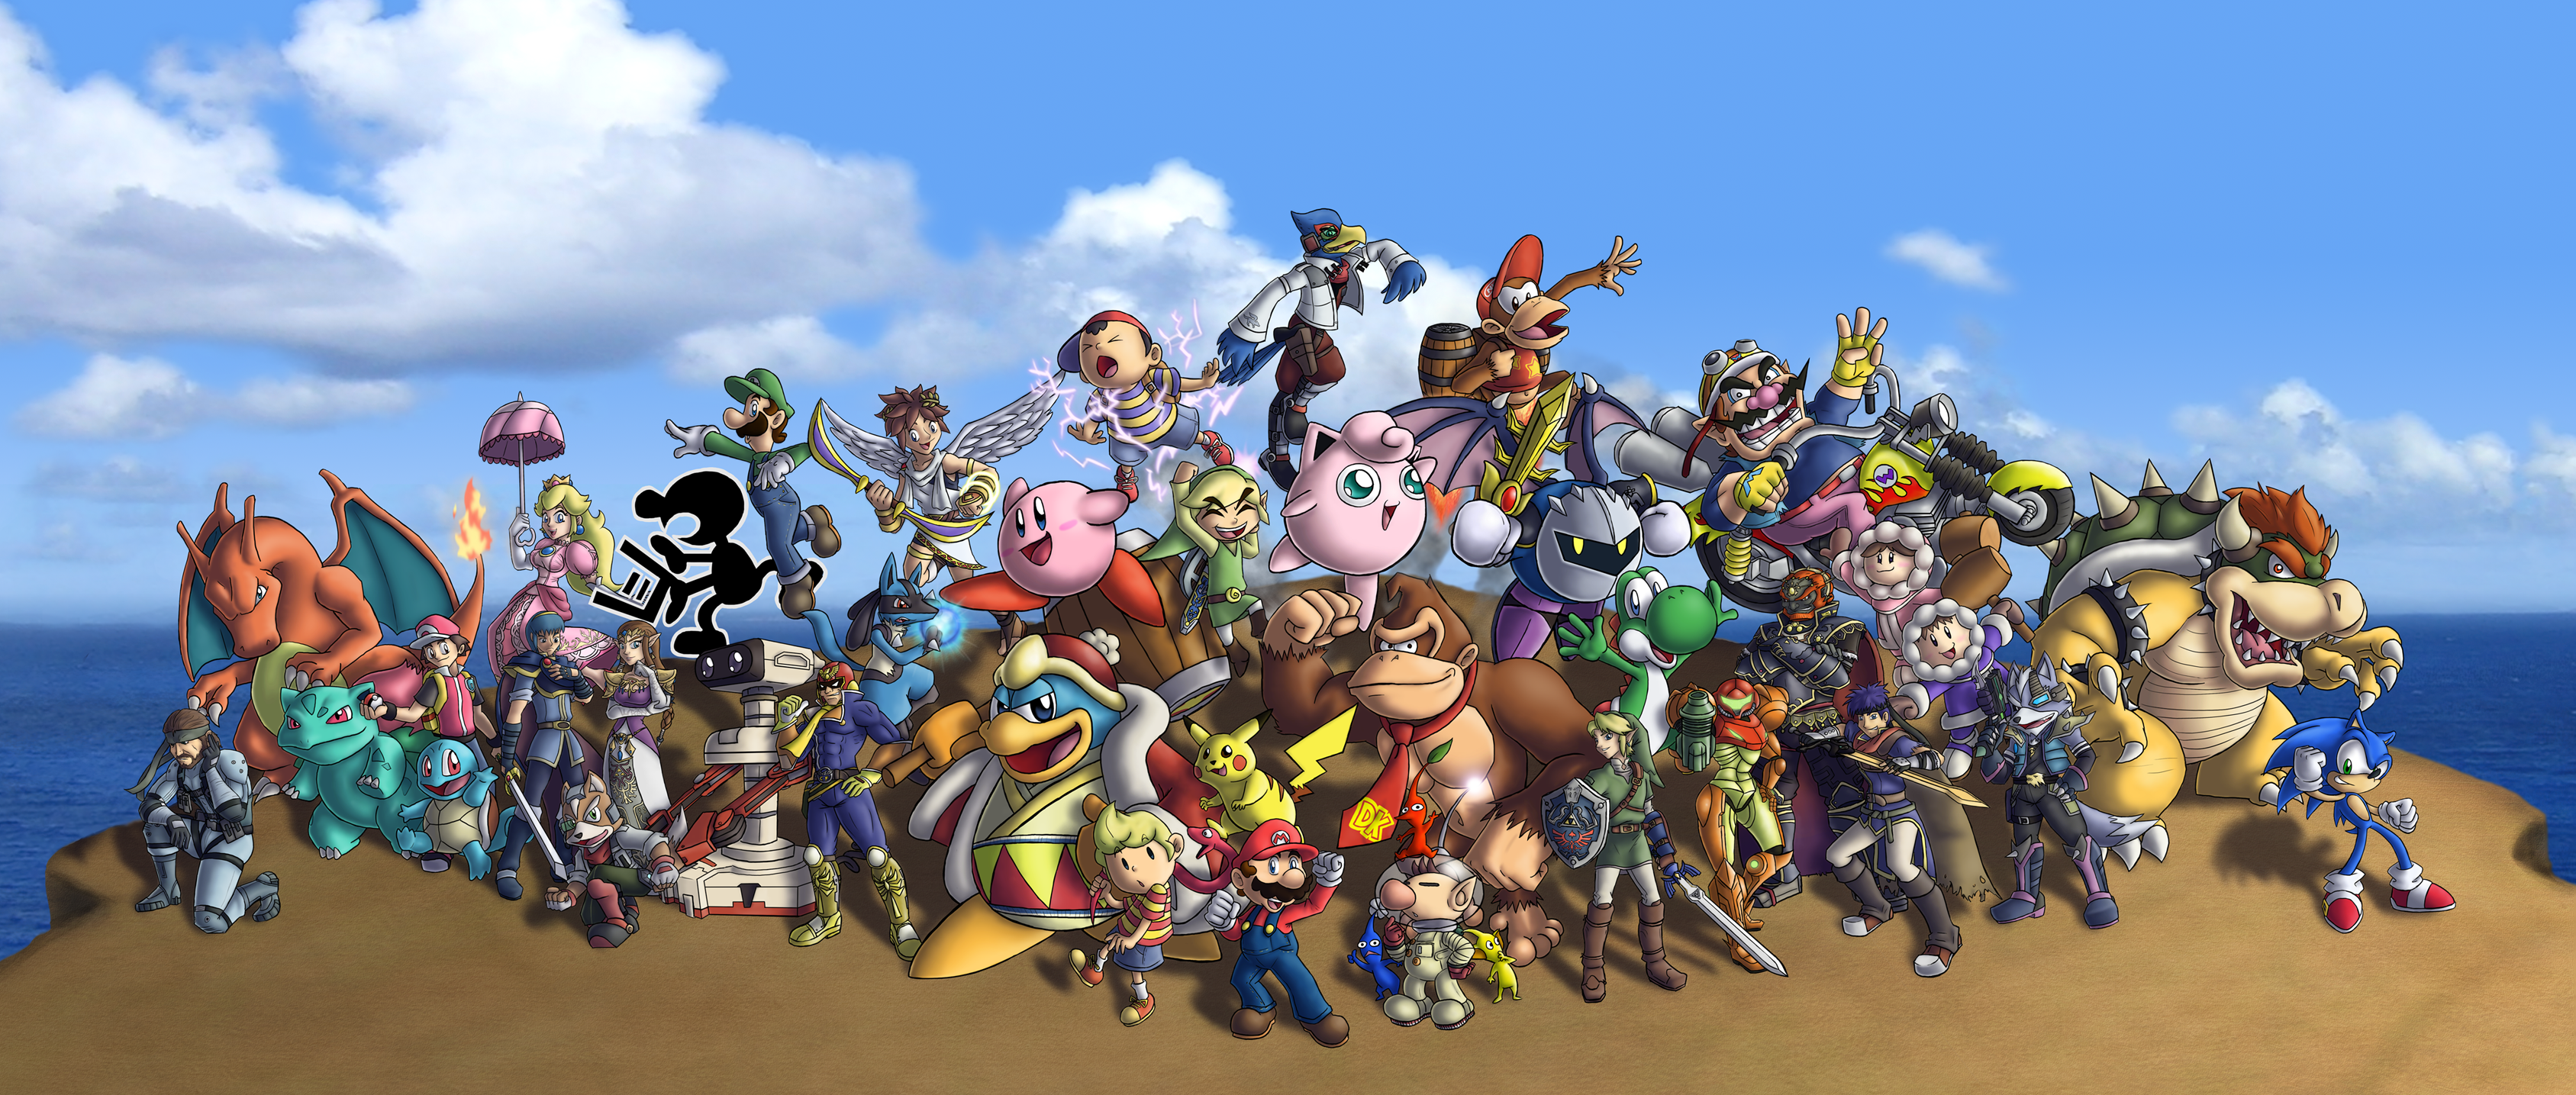 Nintendo Villains Google Search Super Smash Bros Smash Bros